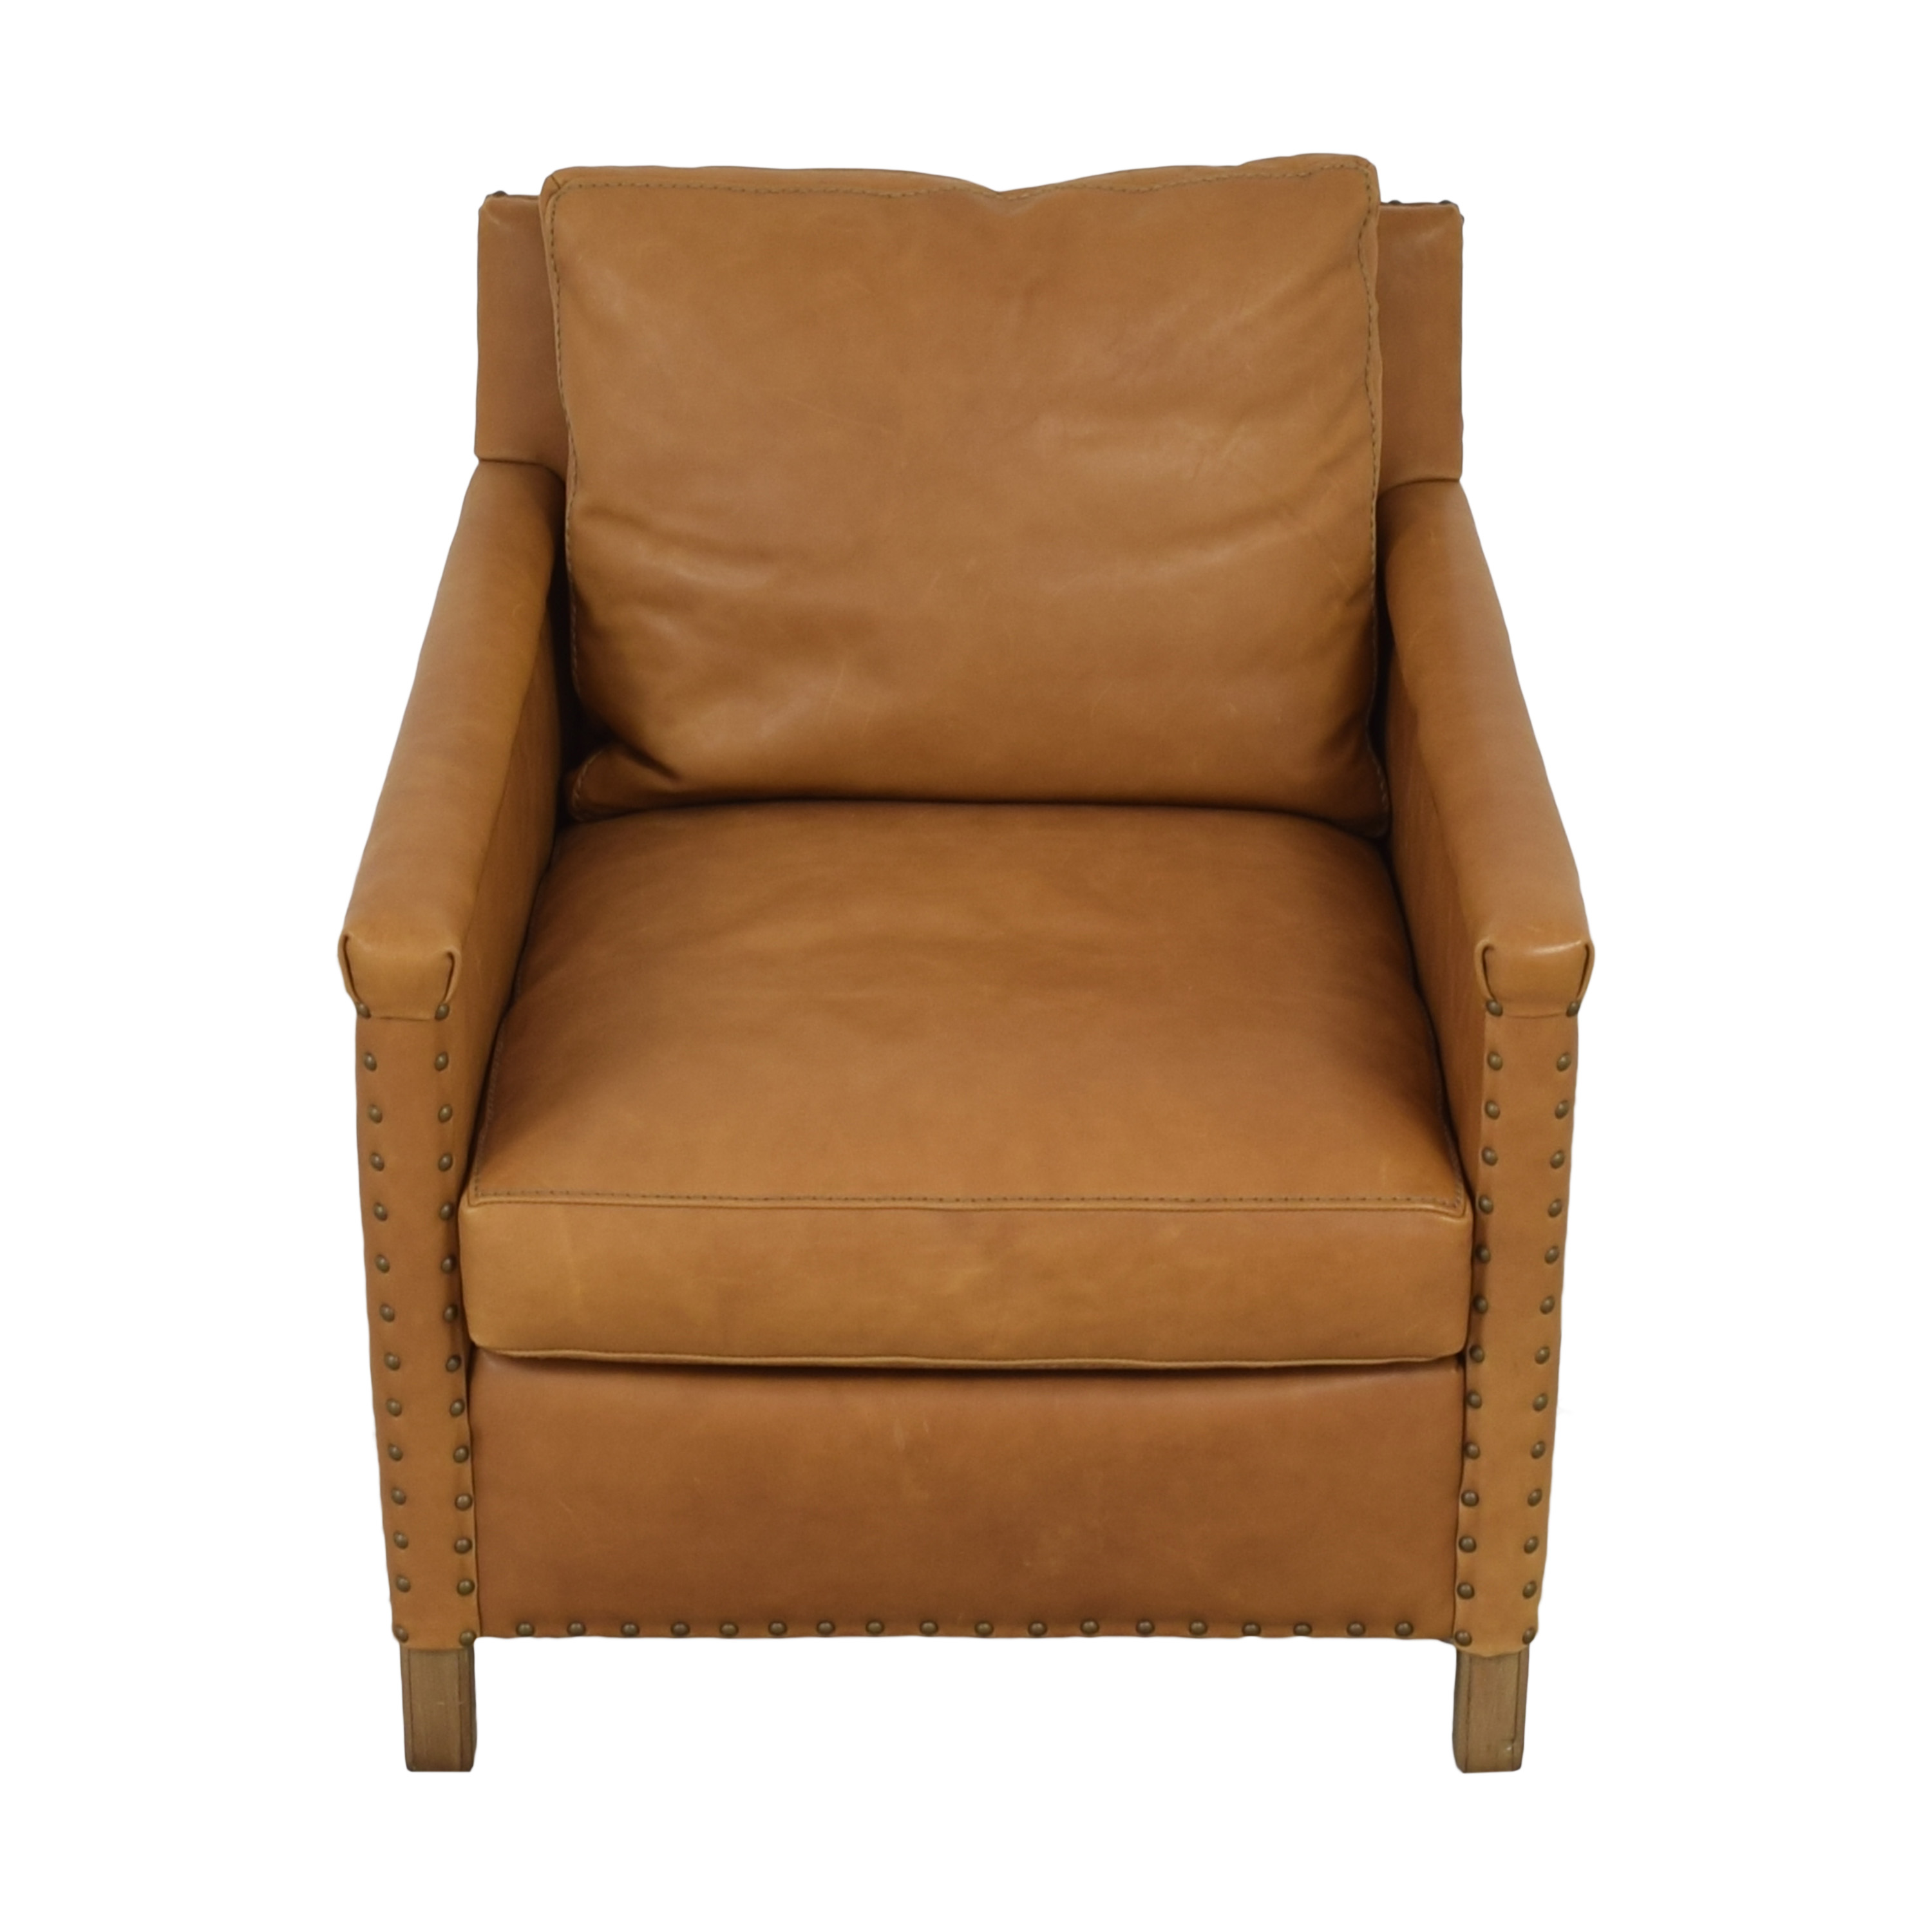 Crate & Barrel Crate & Barrel Trevor Leather Chair nyc